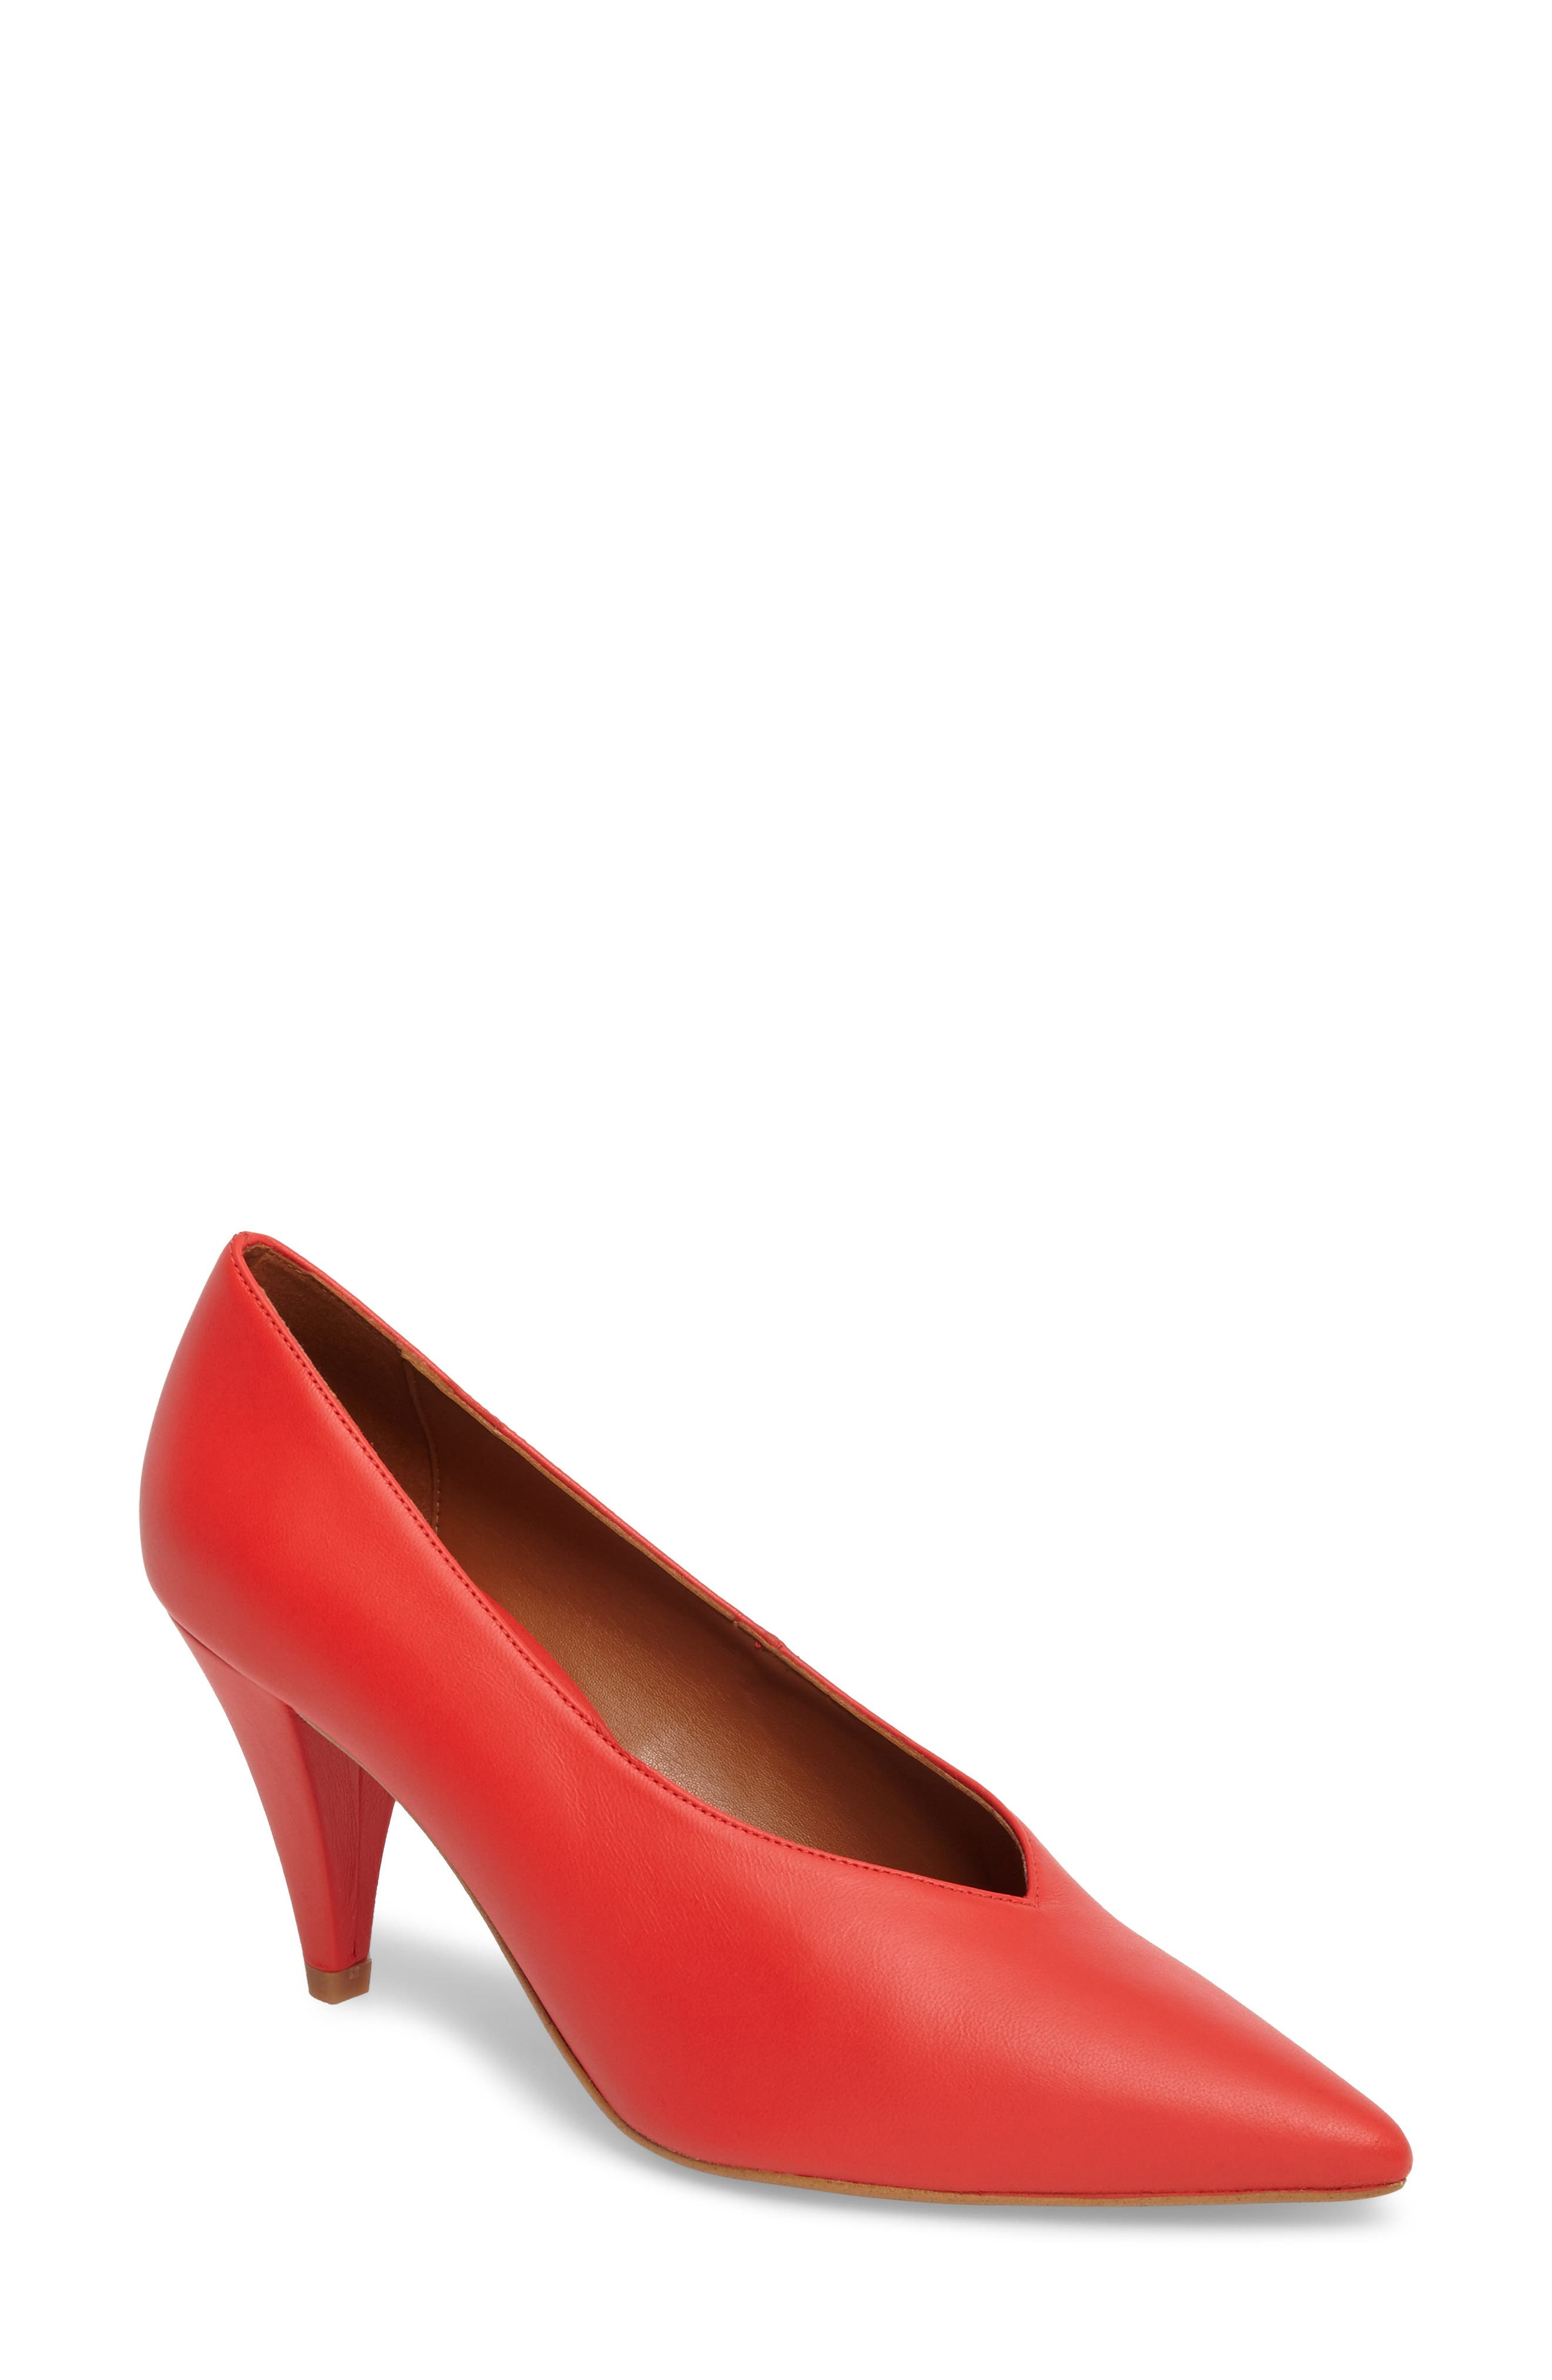 Journal Pointy Toe Pump,                             Main thumbnail 1, color,                             Red